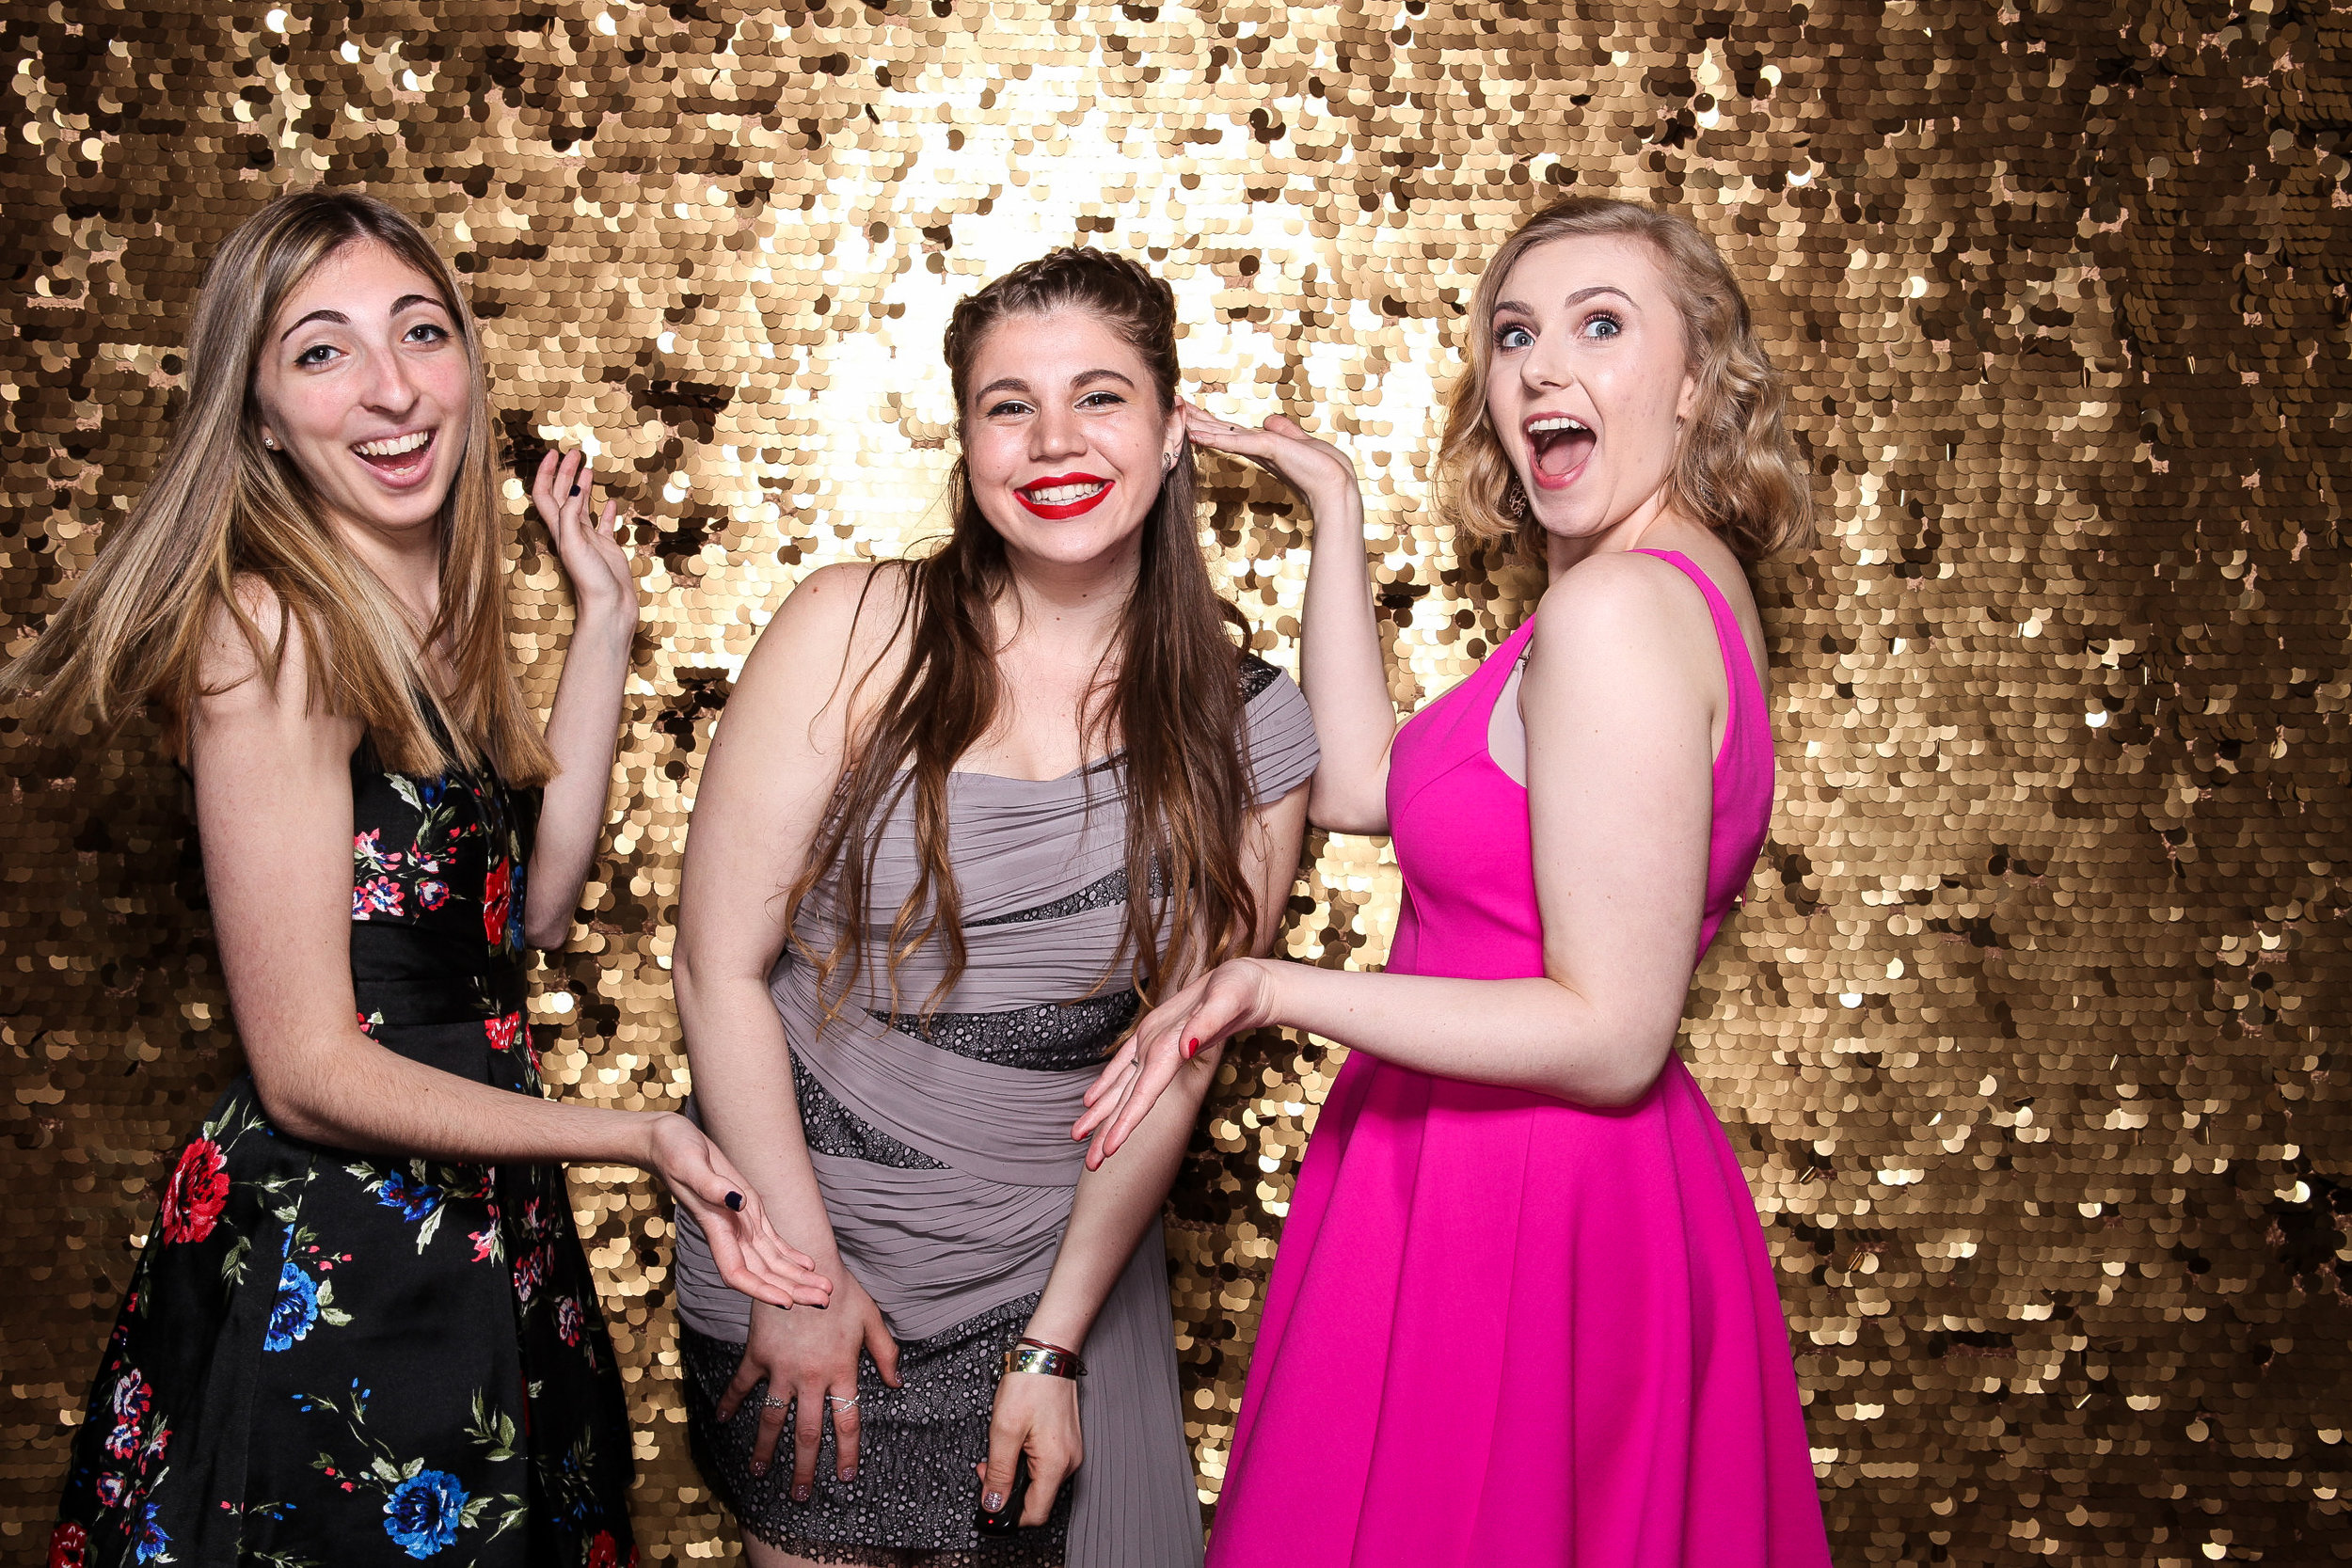 20190503_Adelphi_Senior_Formal-179.jpg